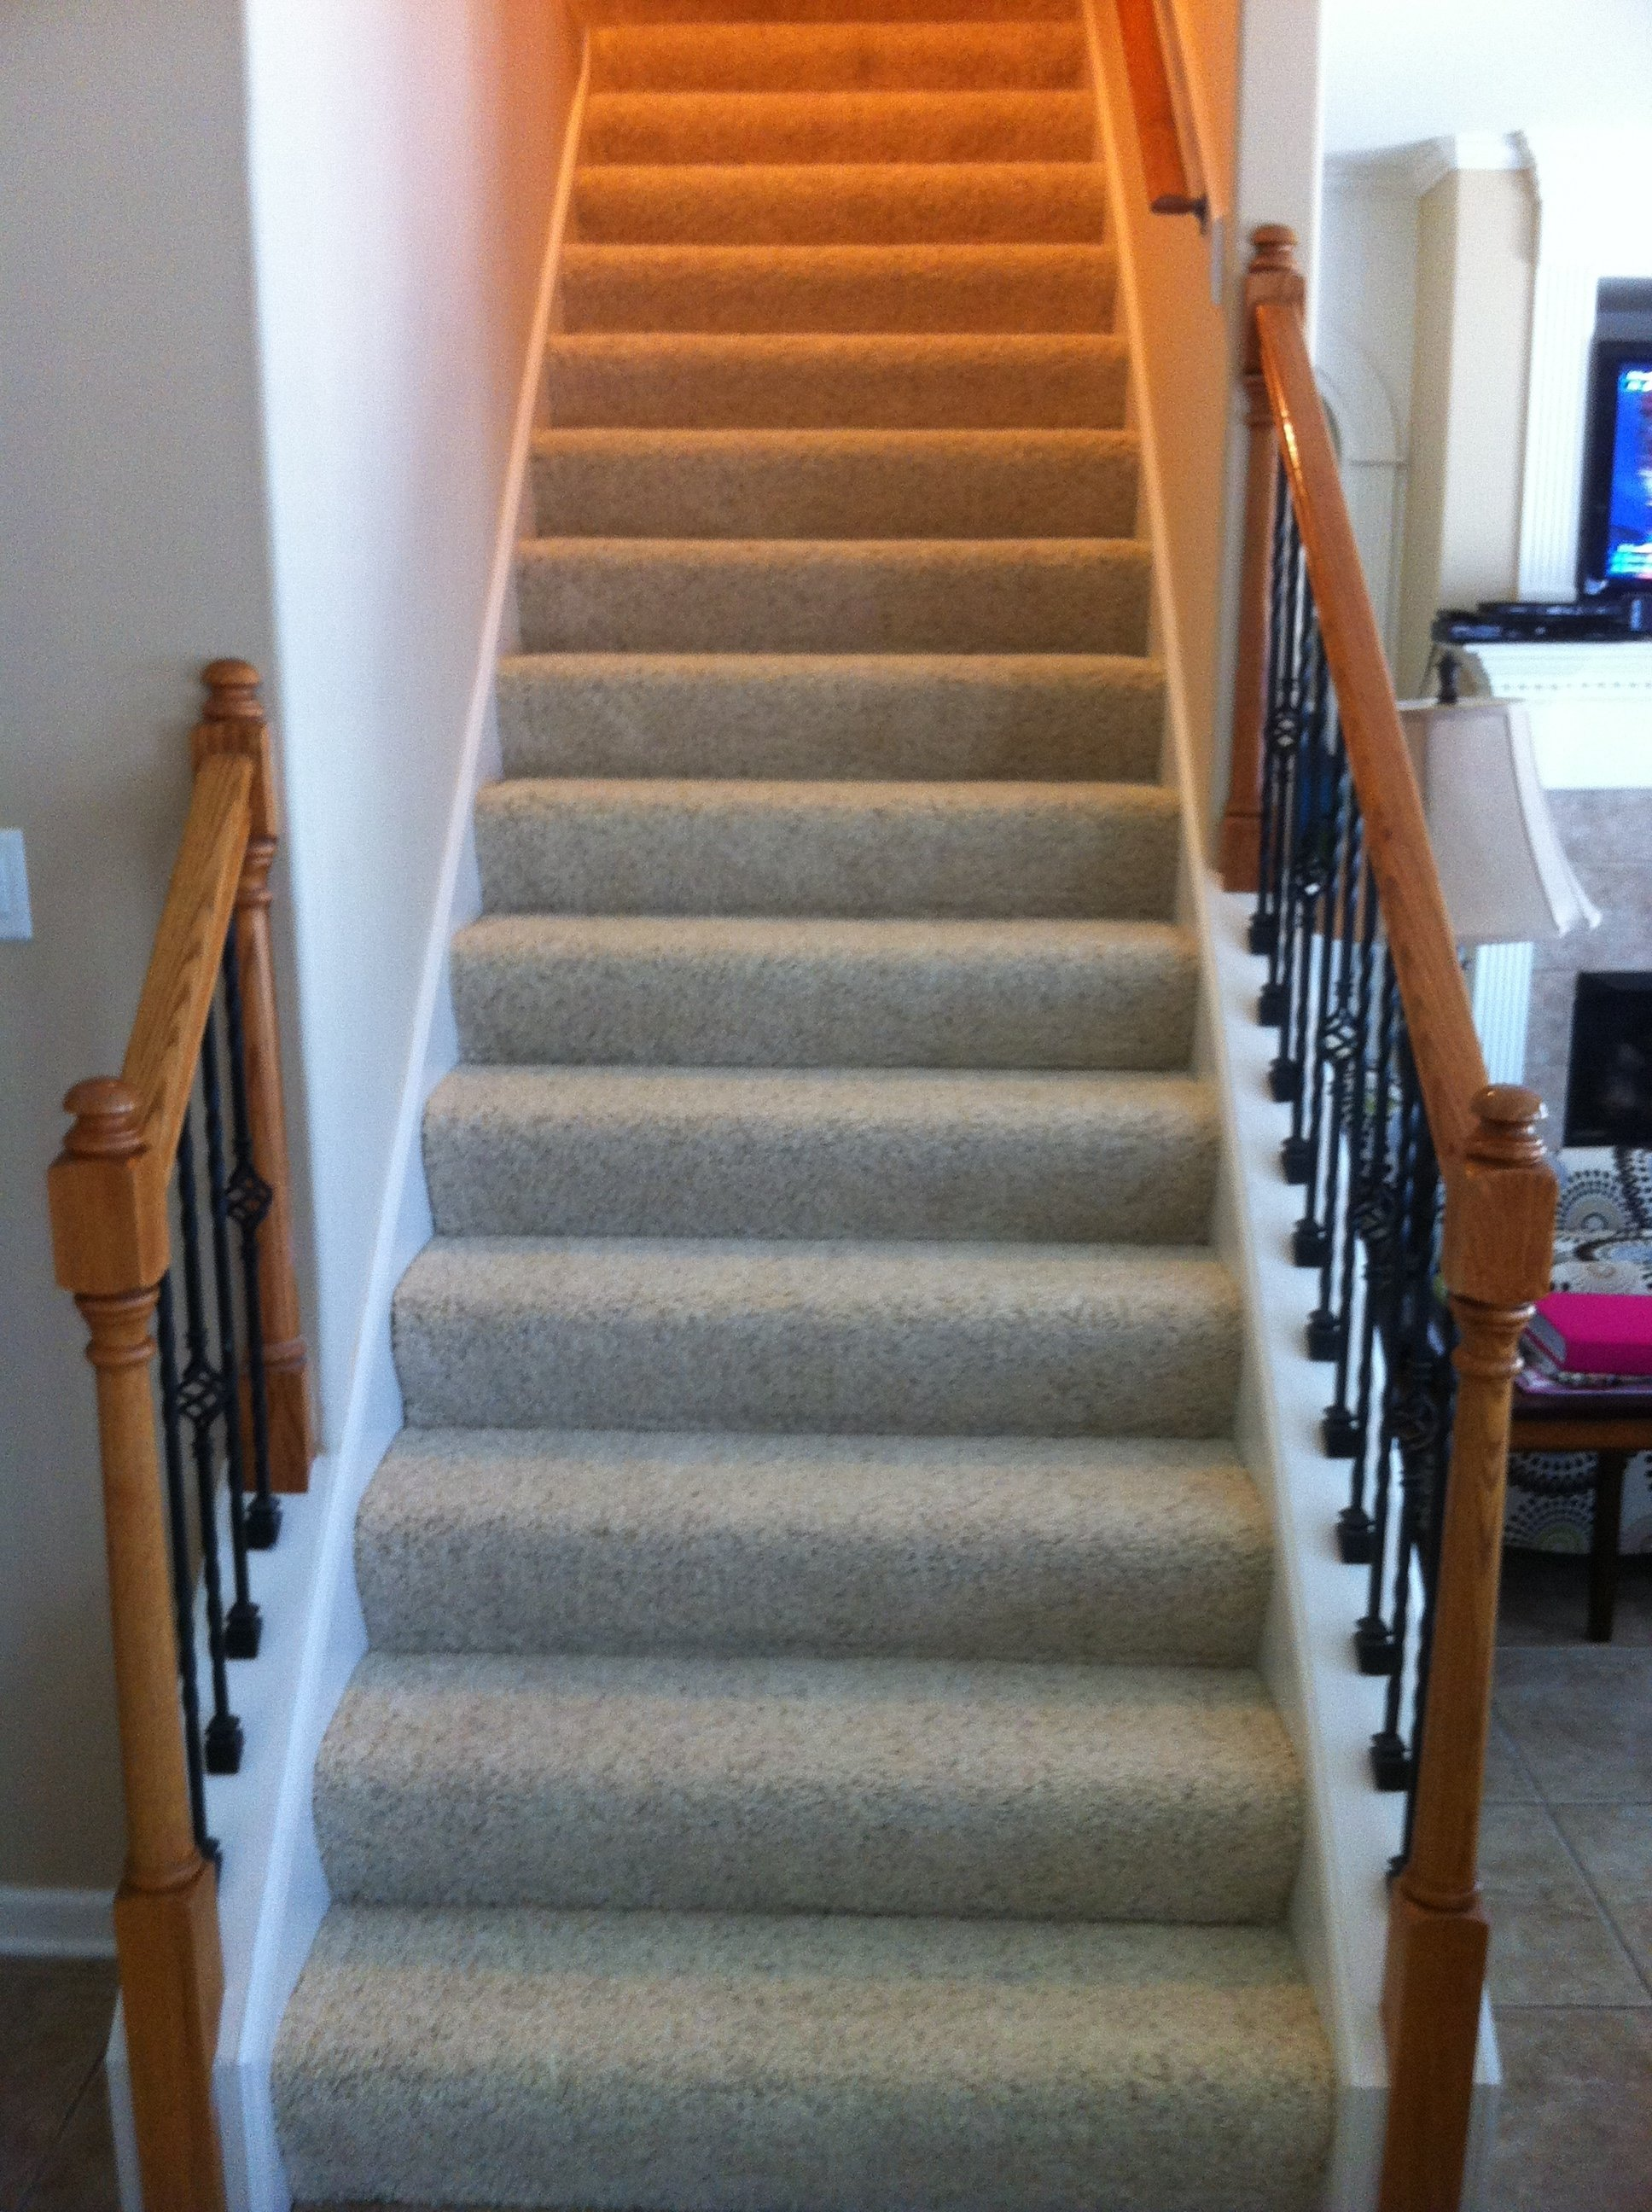 10 Gorgeous Ideas For Stairs Instead Of Carpet modern carpet on stairs with regard to stair installation idea 26 2021